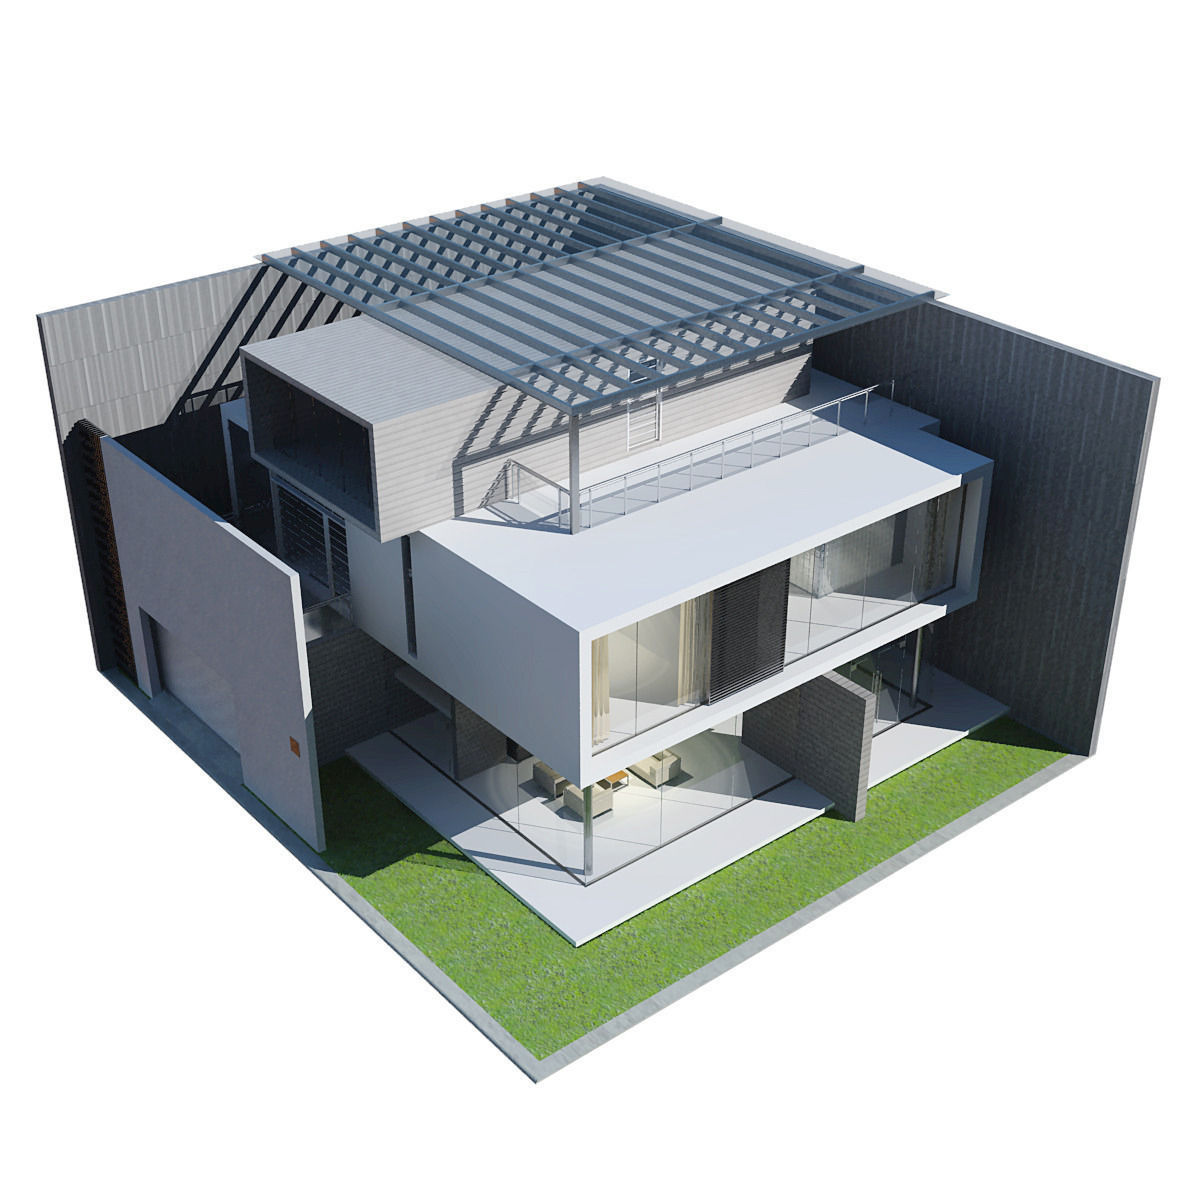 Modern House 3d Model Max Obj 3ds Fbx: new model contemporary house